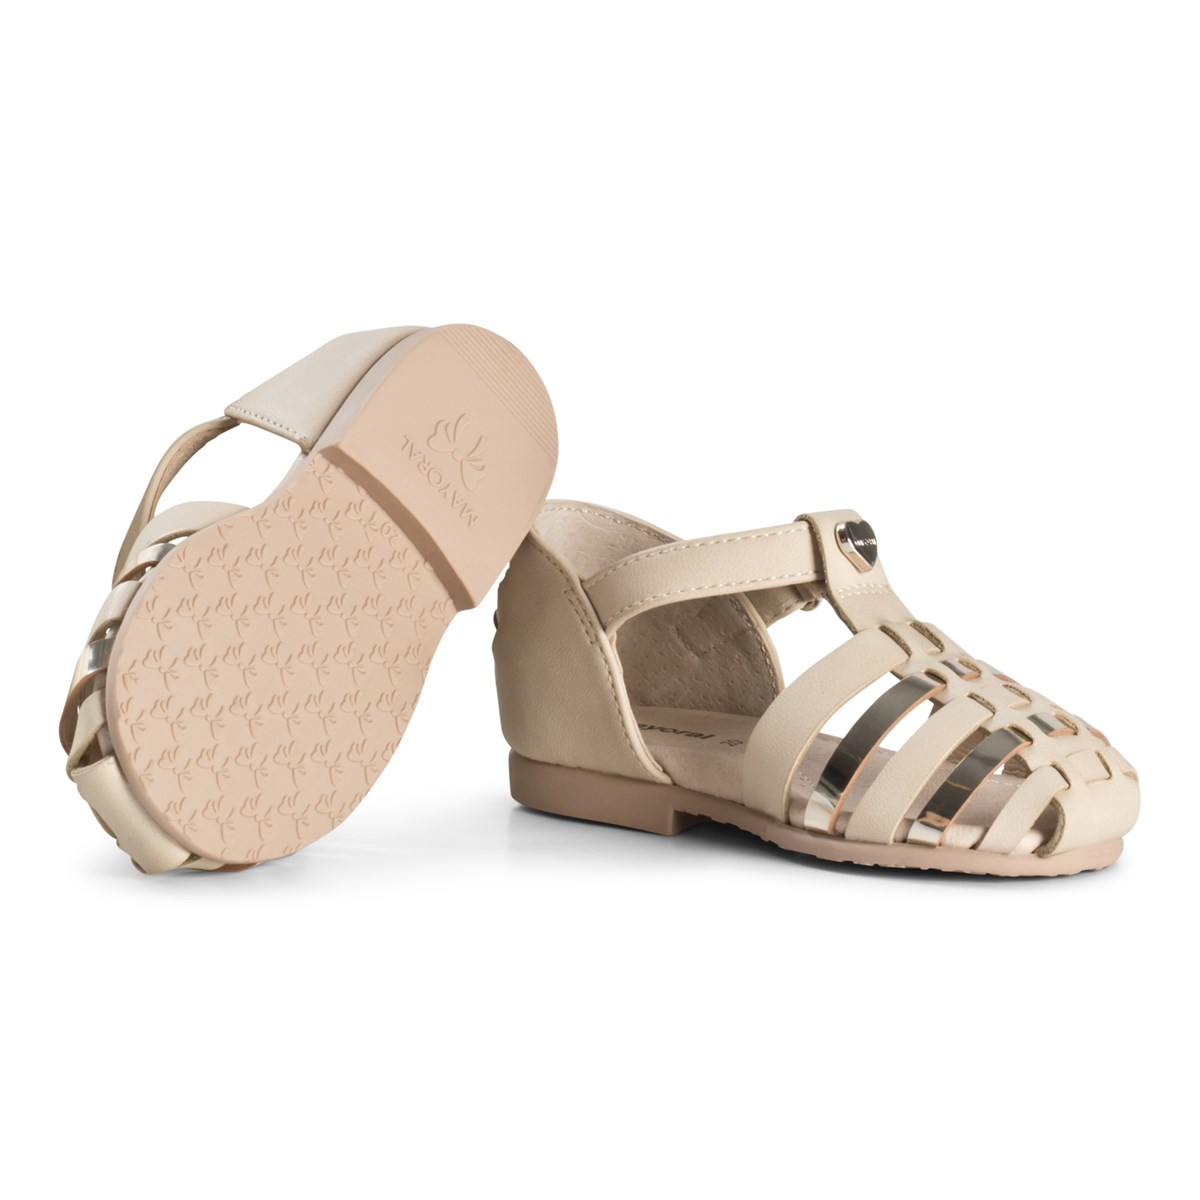 0ddc10064eb Mayoral Gold Woven Close Toe Metallic Sandals